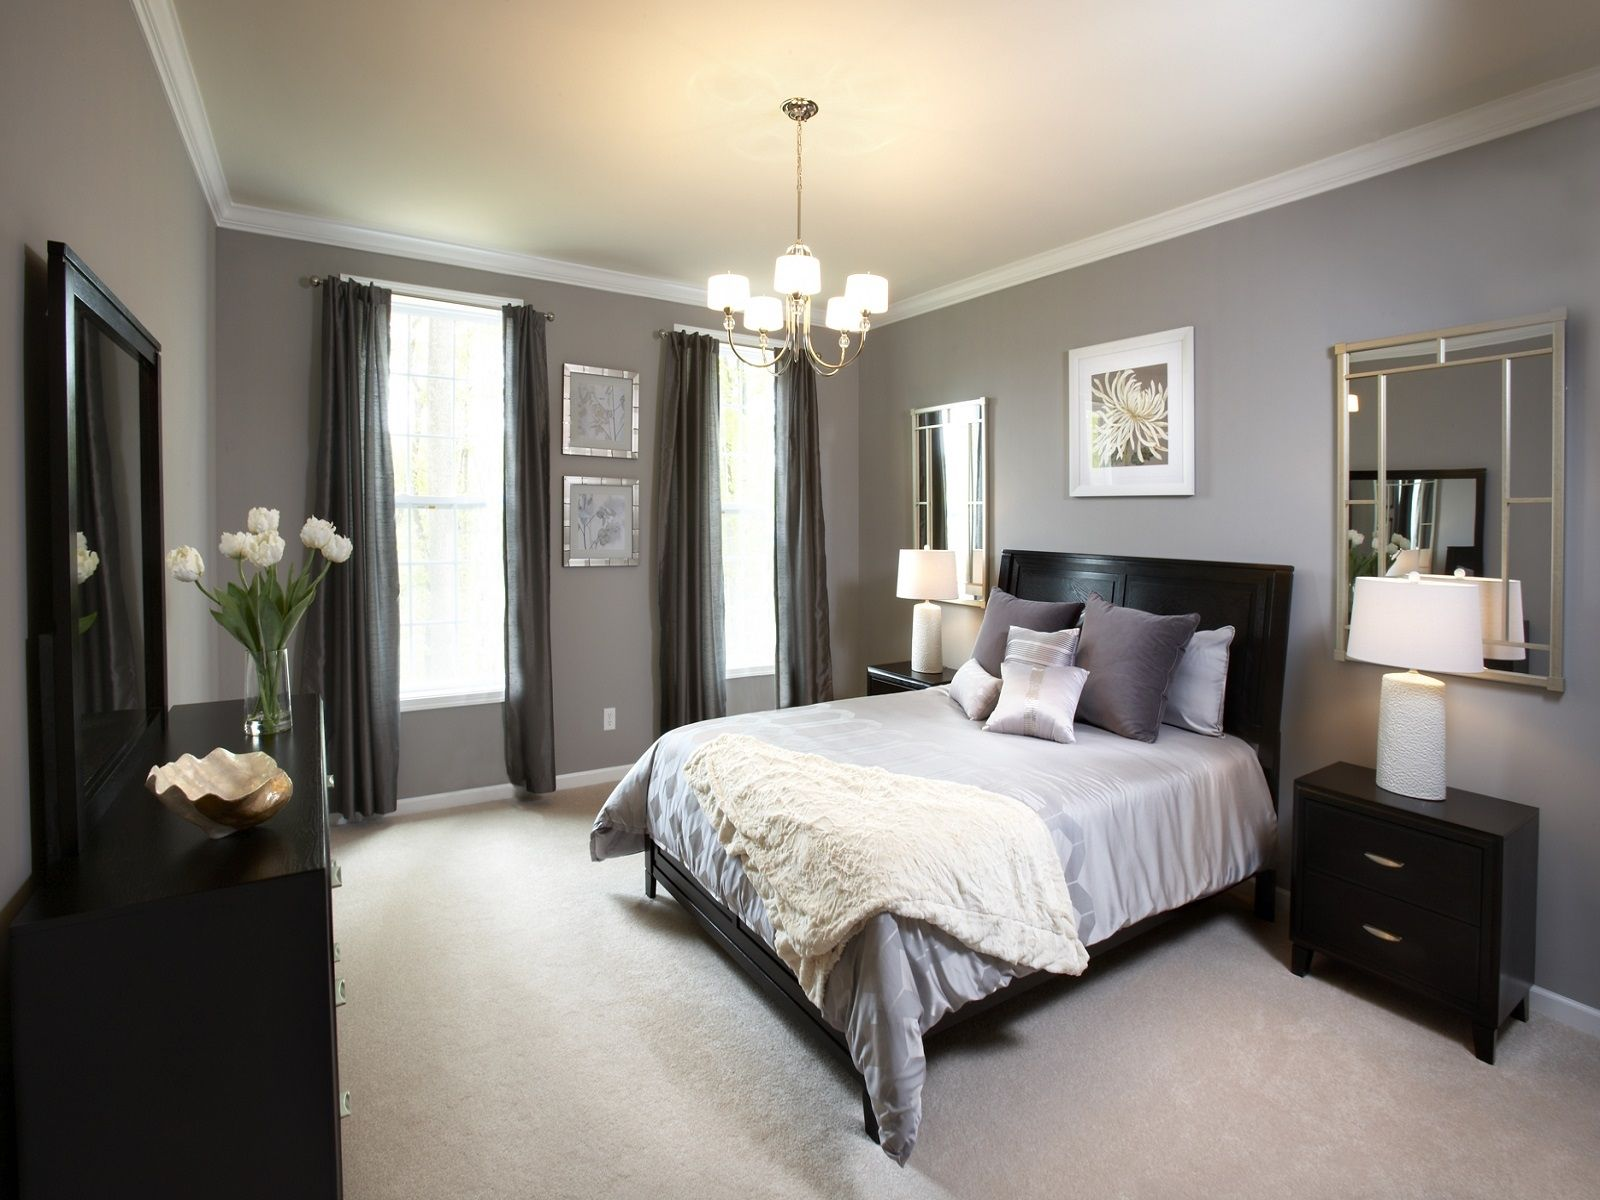 Master Bedroom Color Ideas 45 Beautiful Paint Color Ideas For Master Bedroom  Bedrooms